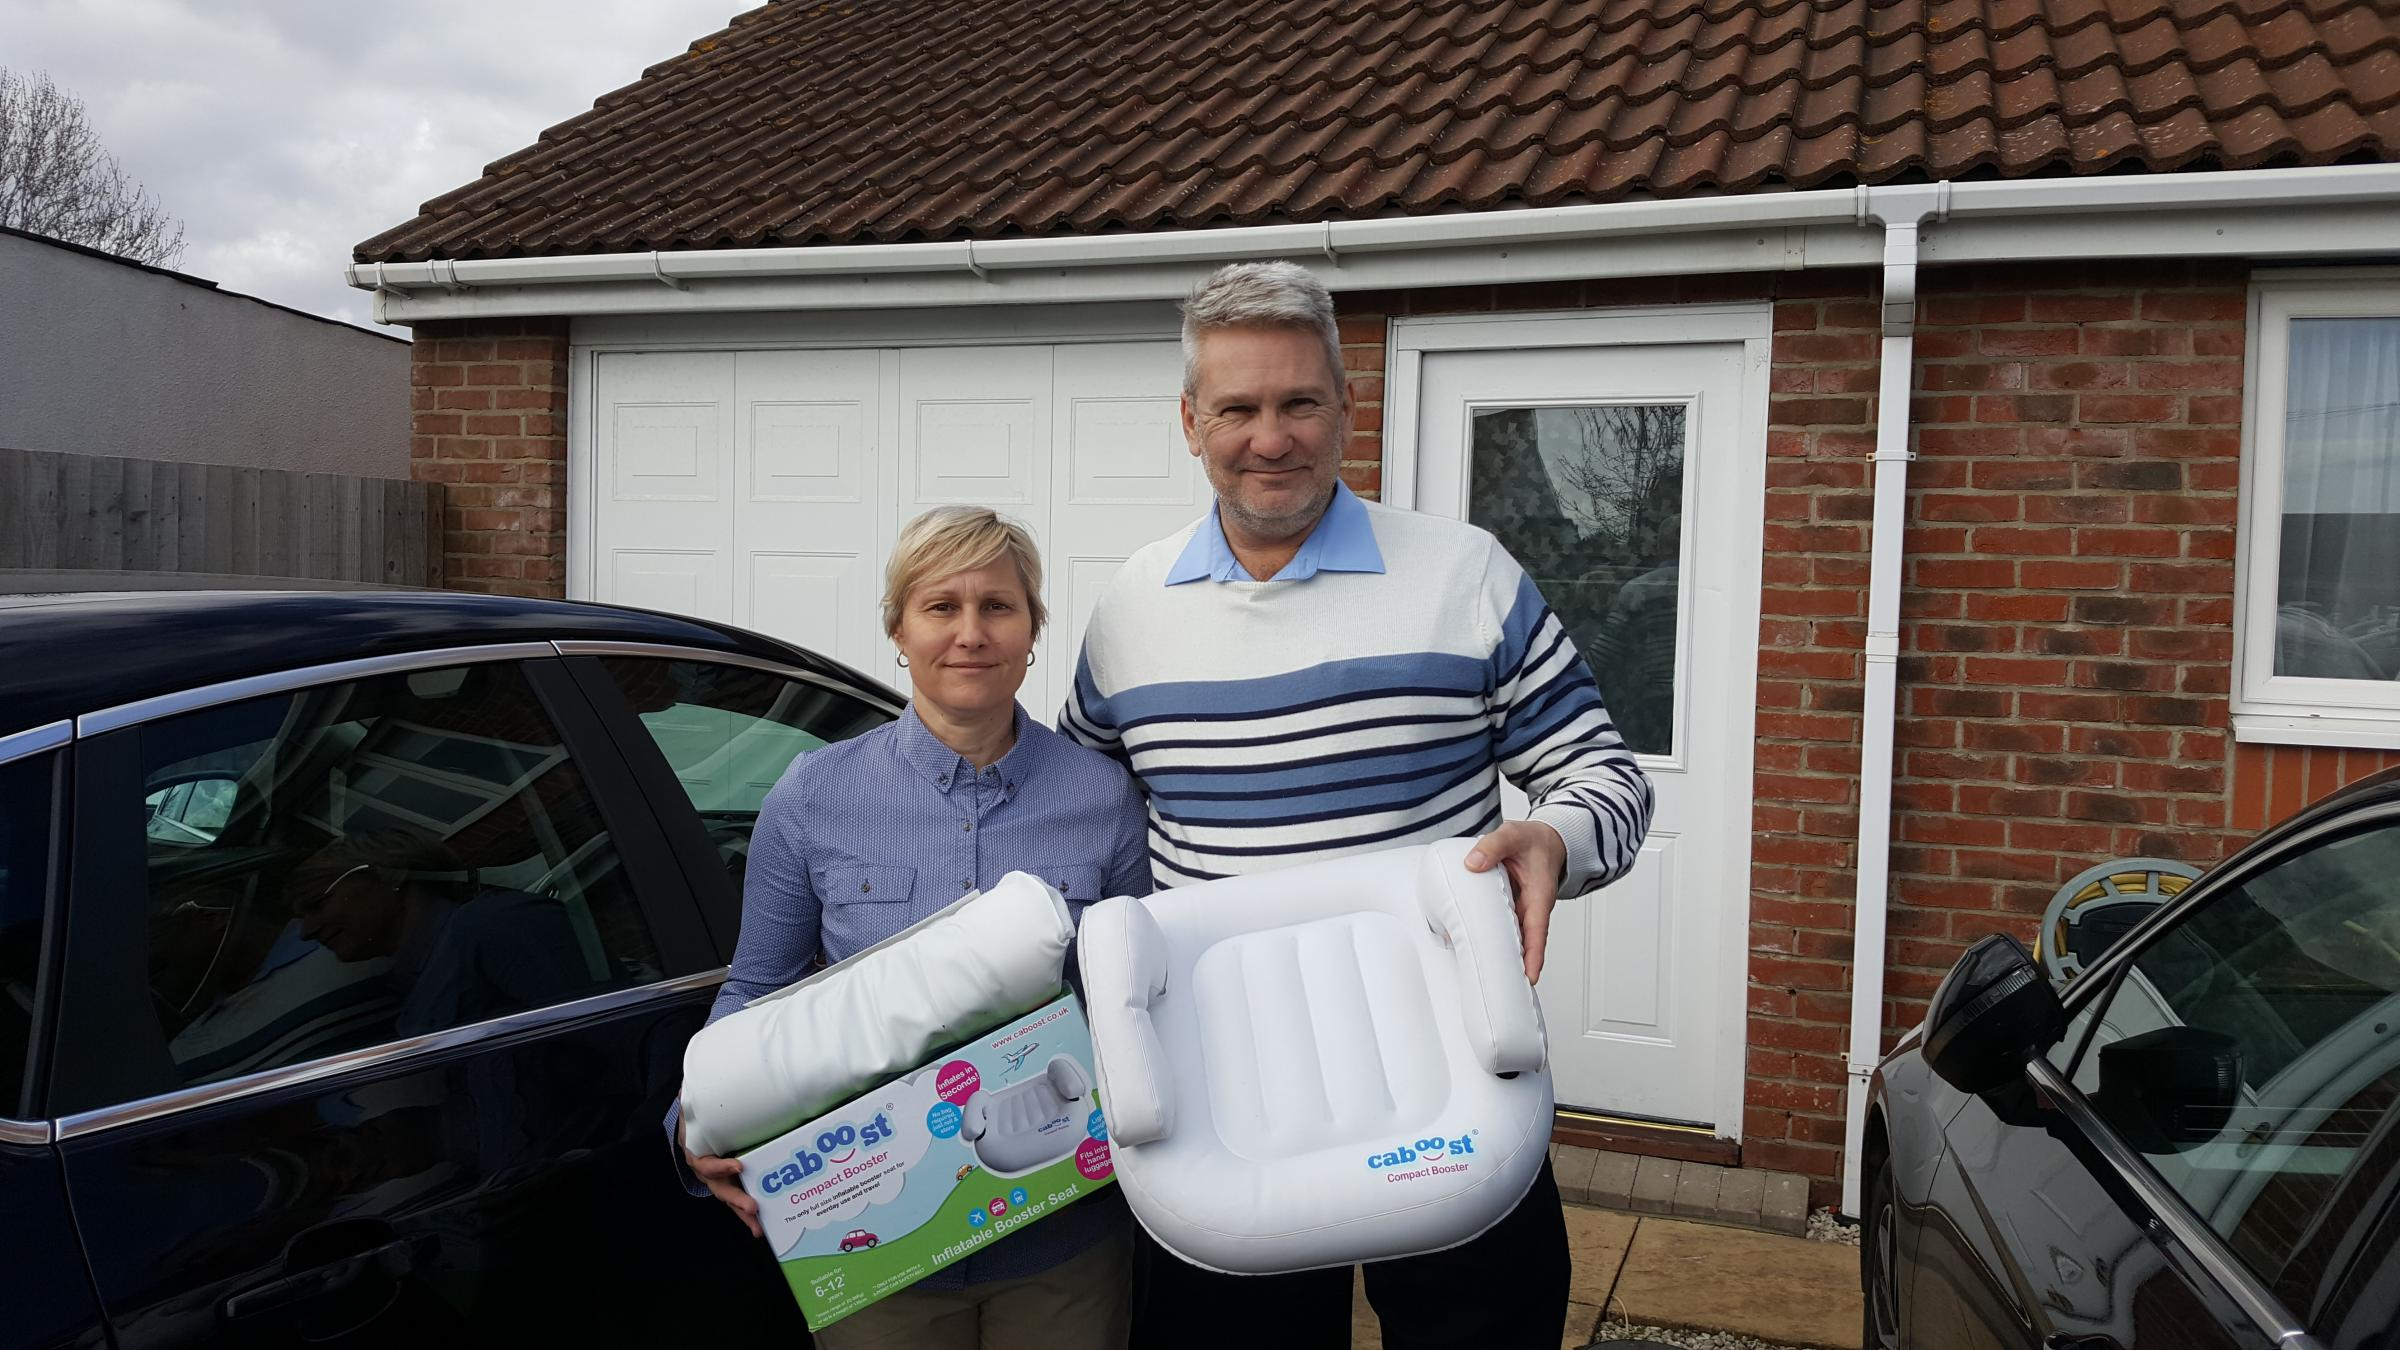 NEW VENTURE: Sue Spaven and her husband Steve with the Caboost car seat